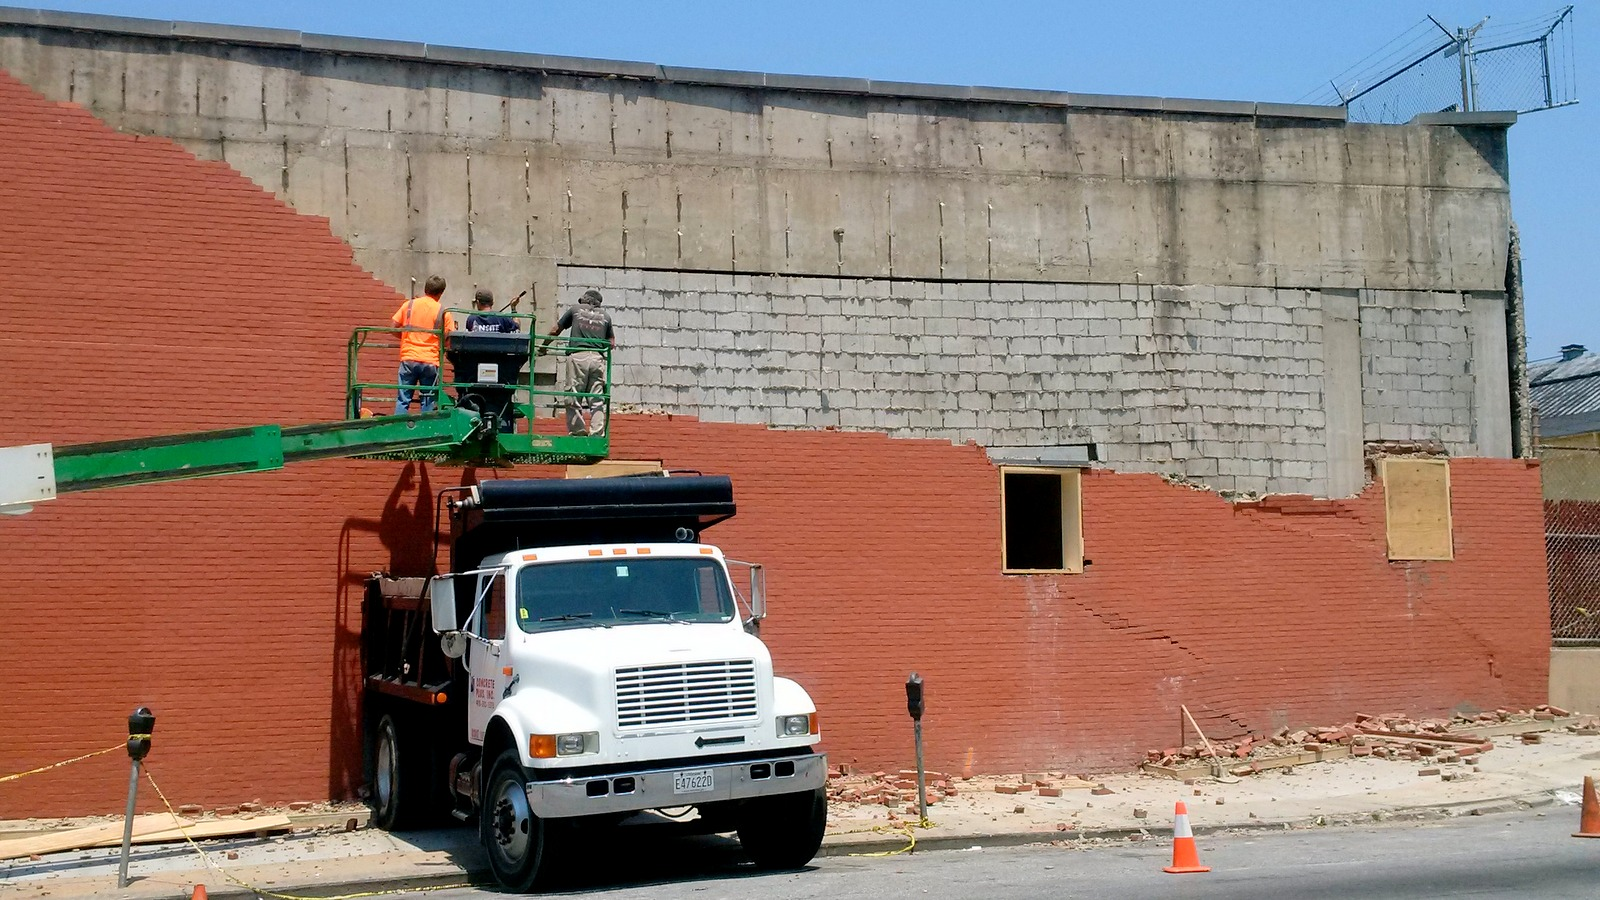 On May 29, workers remove the brick facade of the Preston Street building. (Fern Shen)